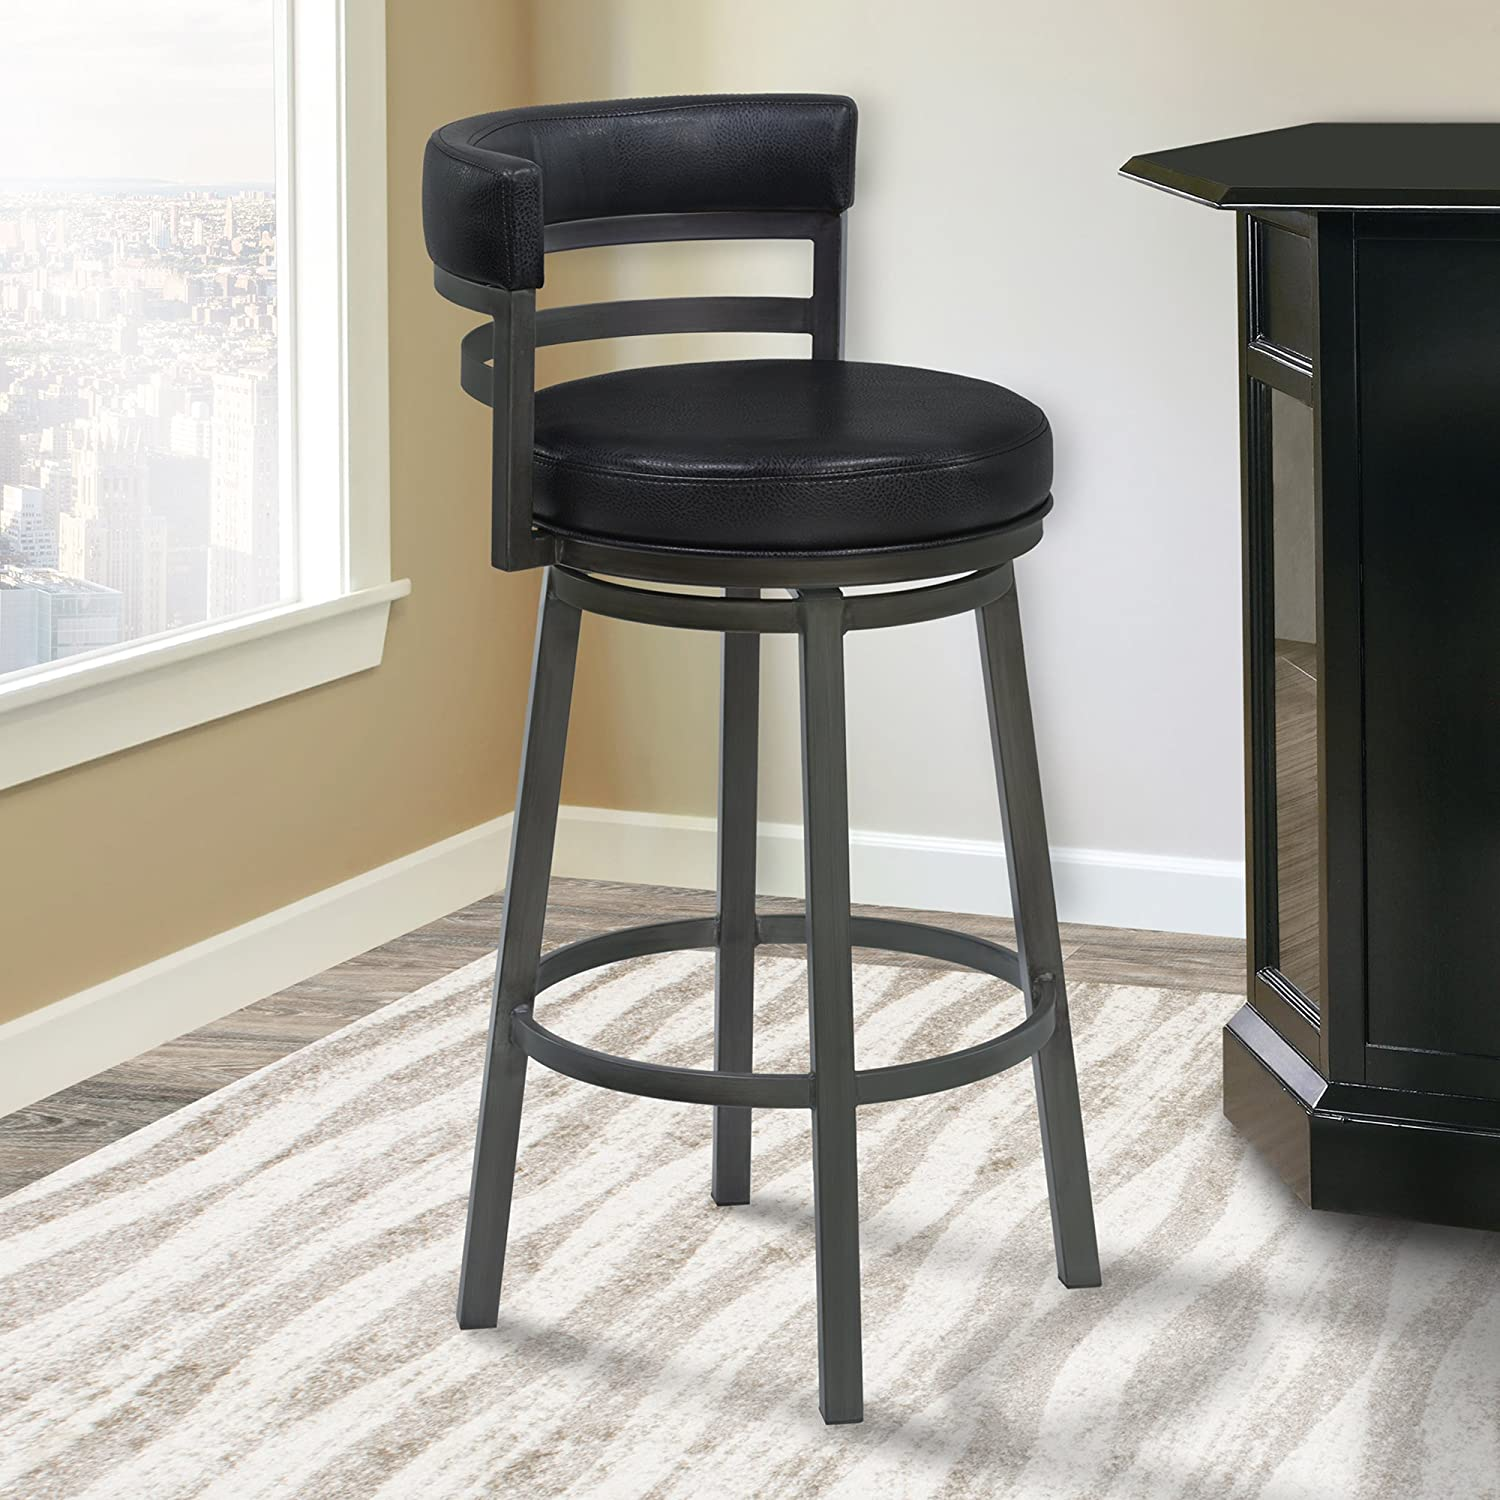 Armen Living Madrid 26 Counter Height Swivel Barstool in Ford Black Faux Leather and Mineral Finish